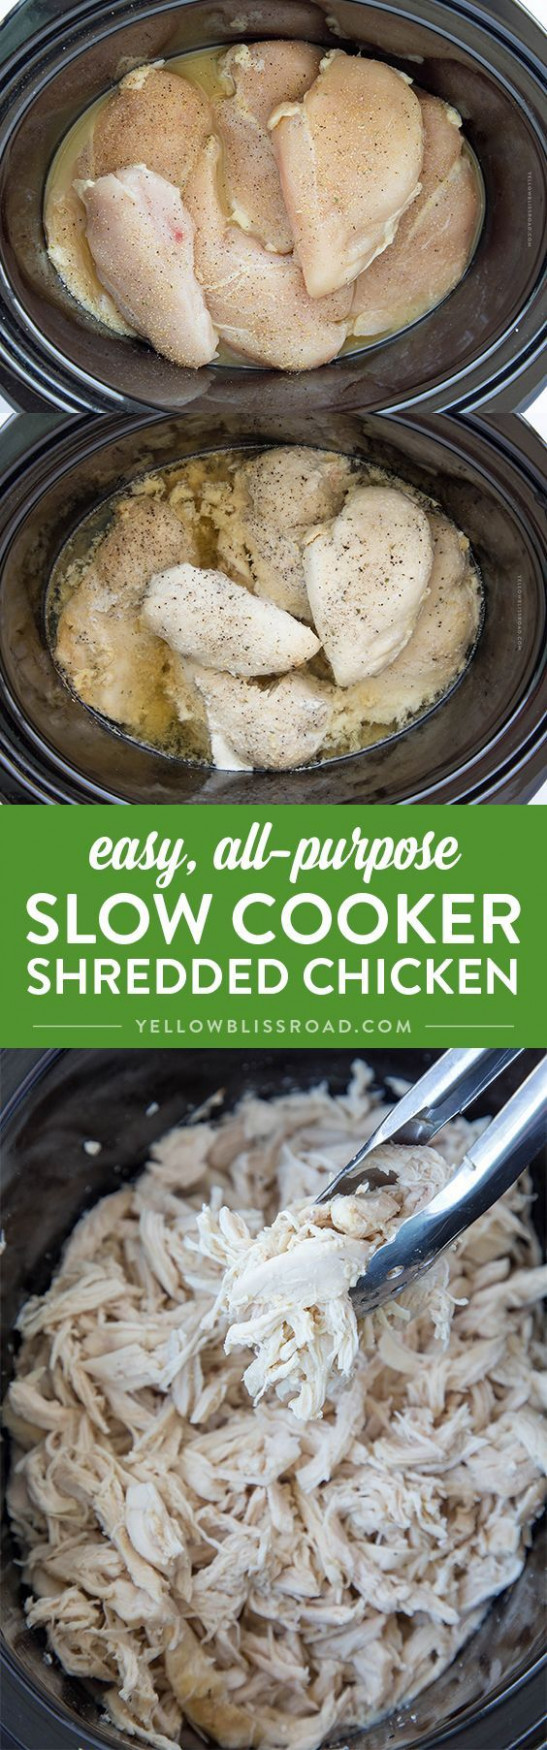 Easy, All-Purpose, Slow Cooker Shredded Chicken | Recipe ..